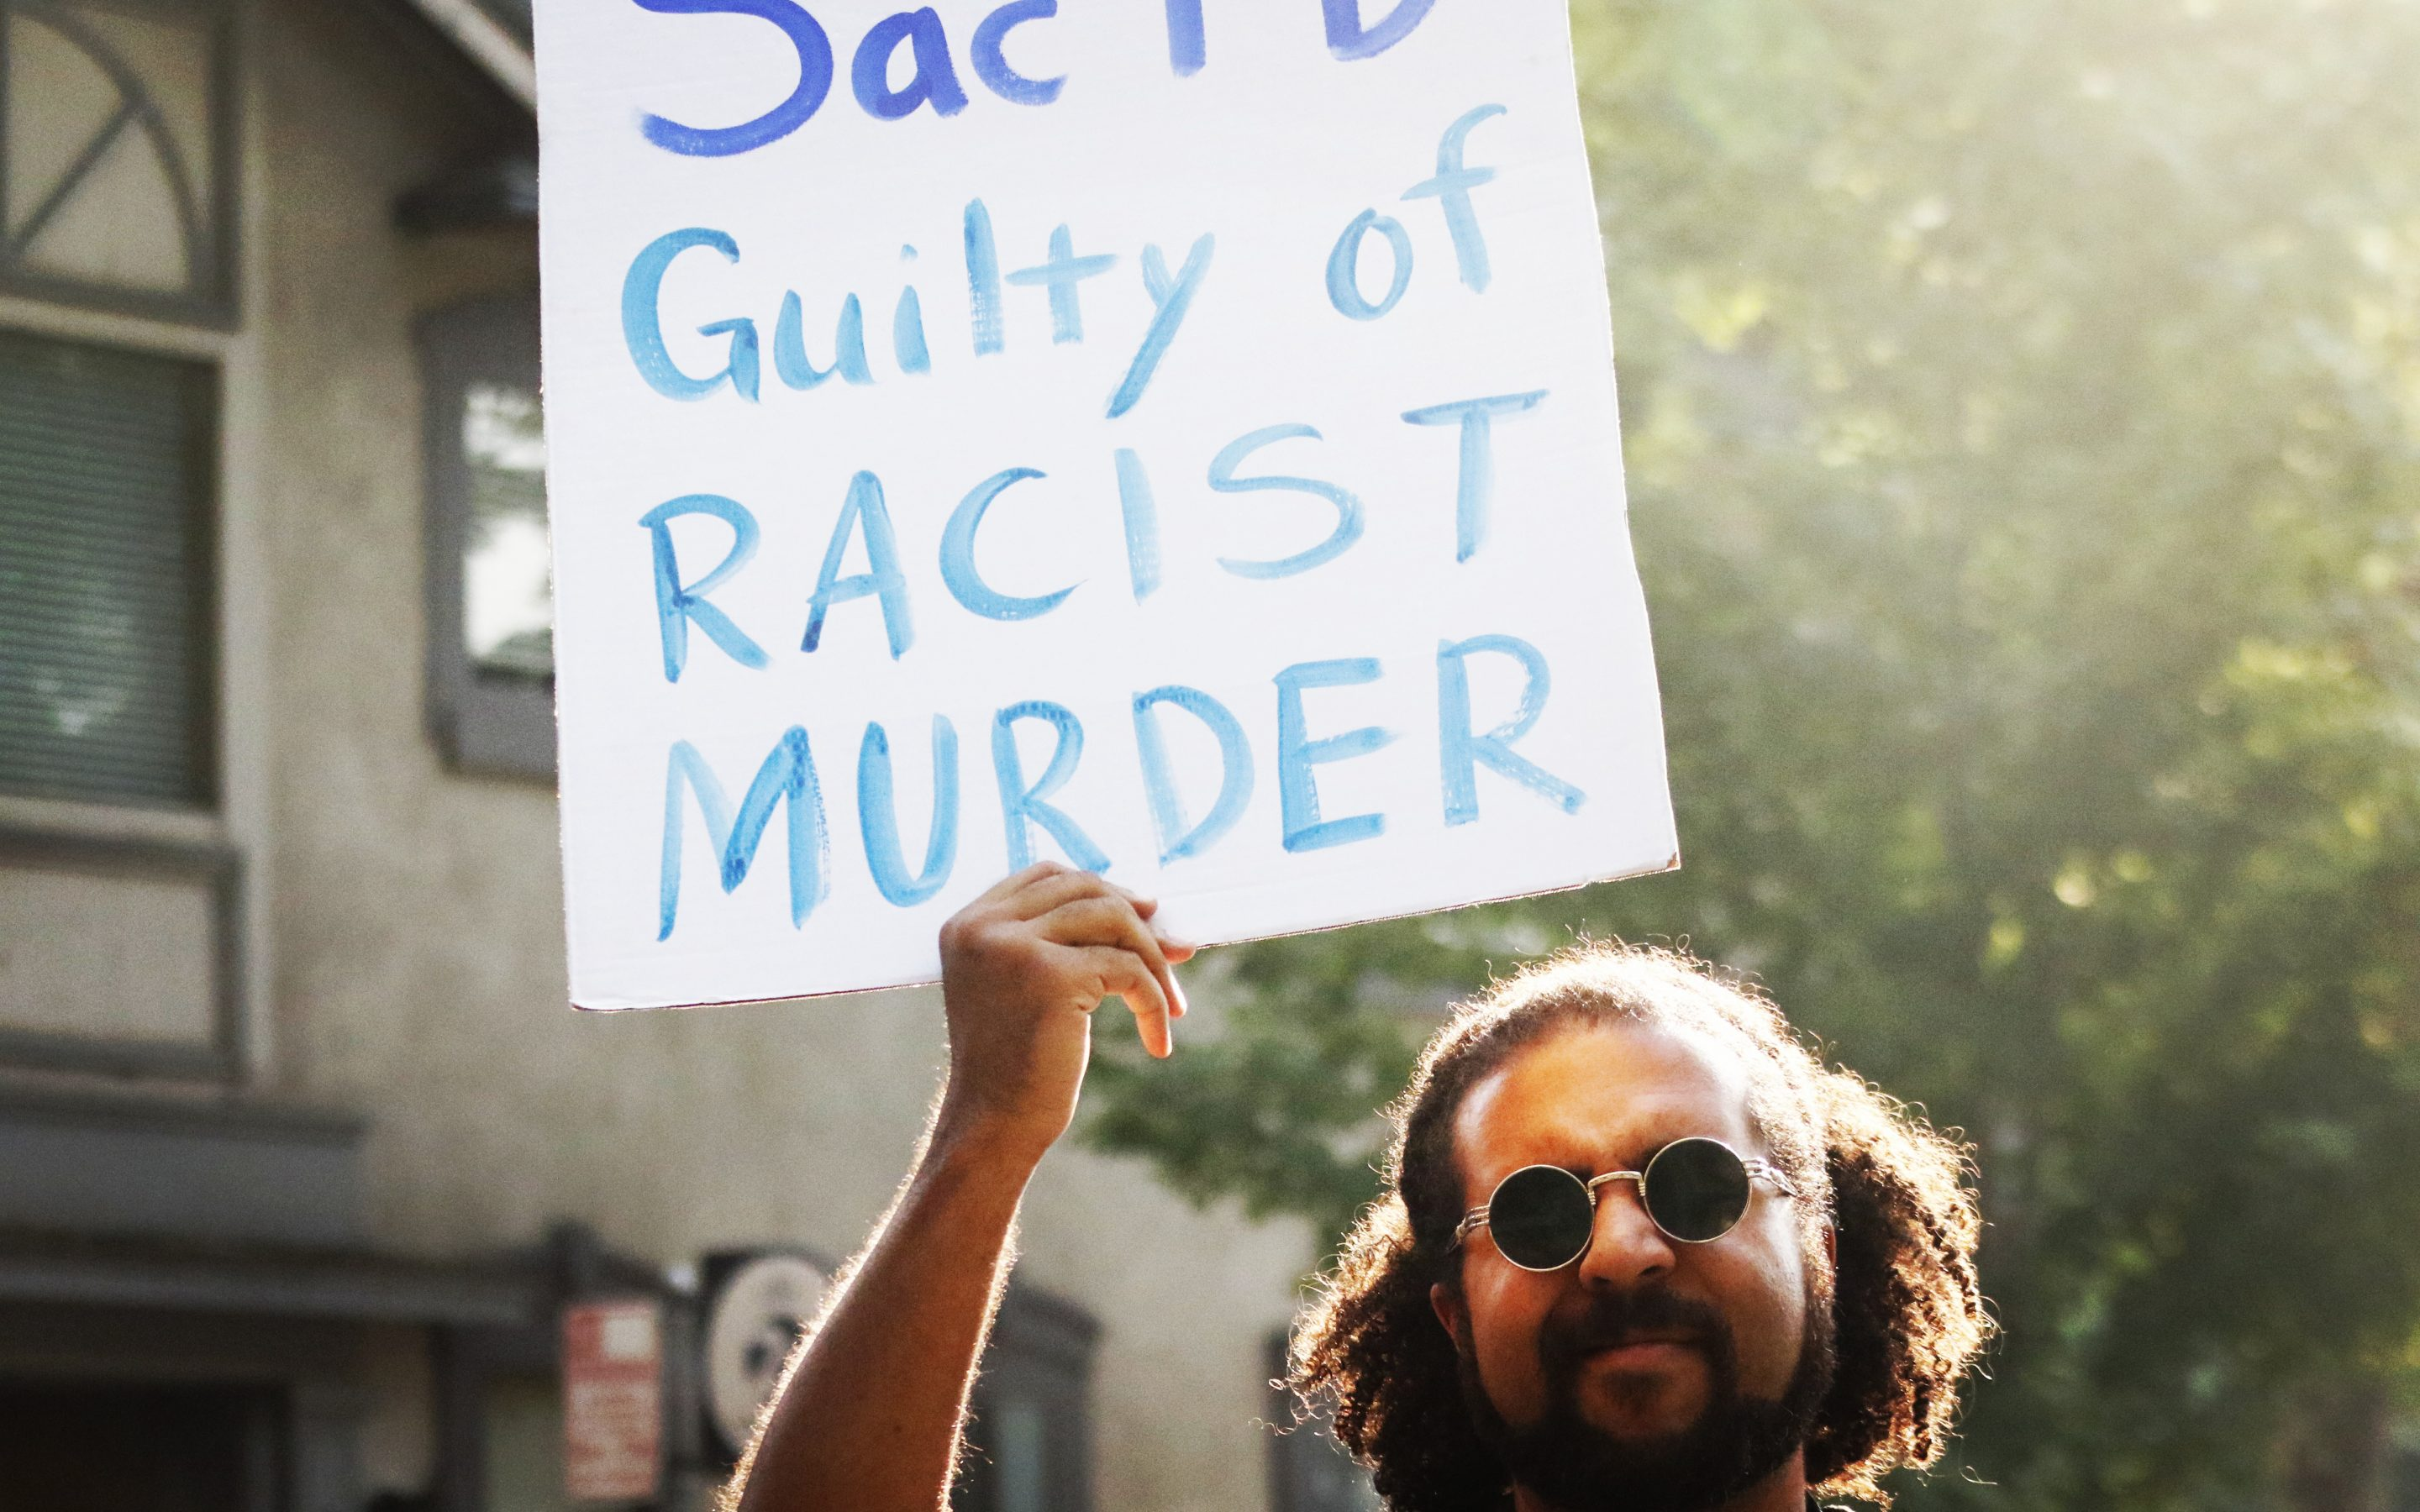 """BLM Member holding sign that reads: """"Sac PD Guilty of Racist Murder."""""""